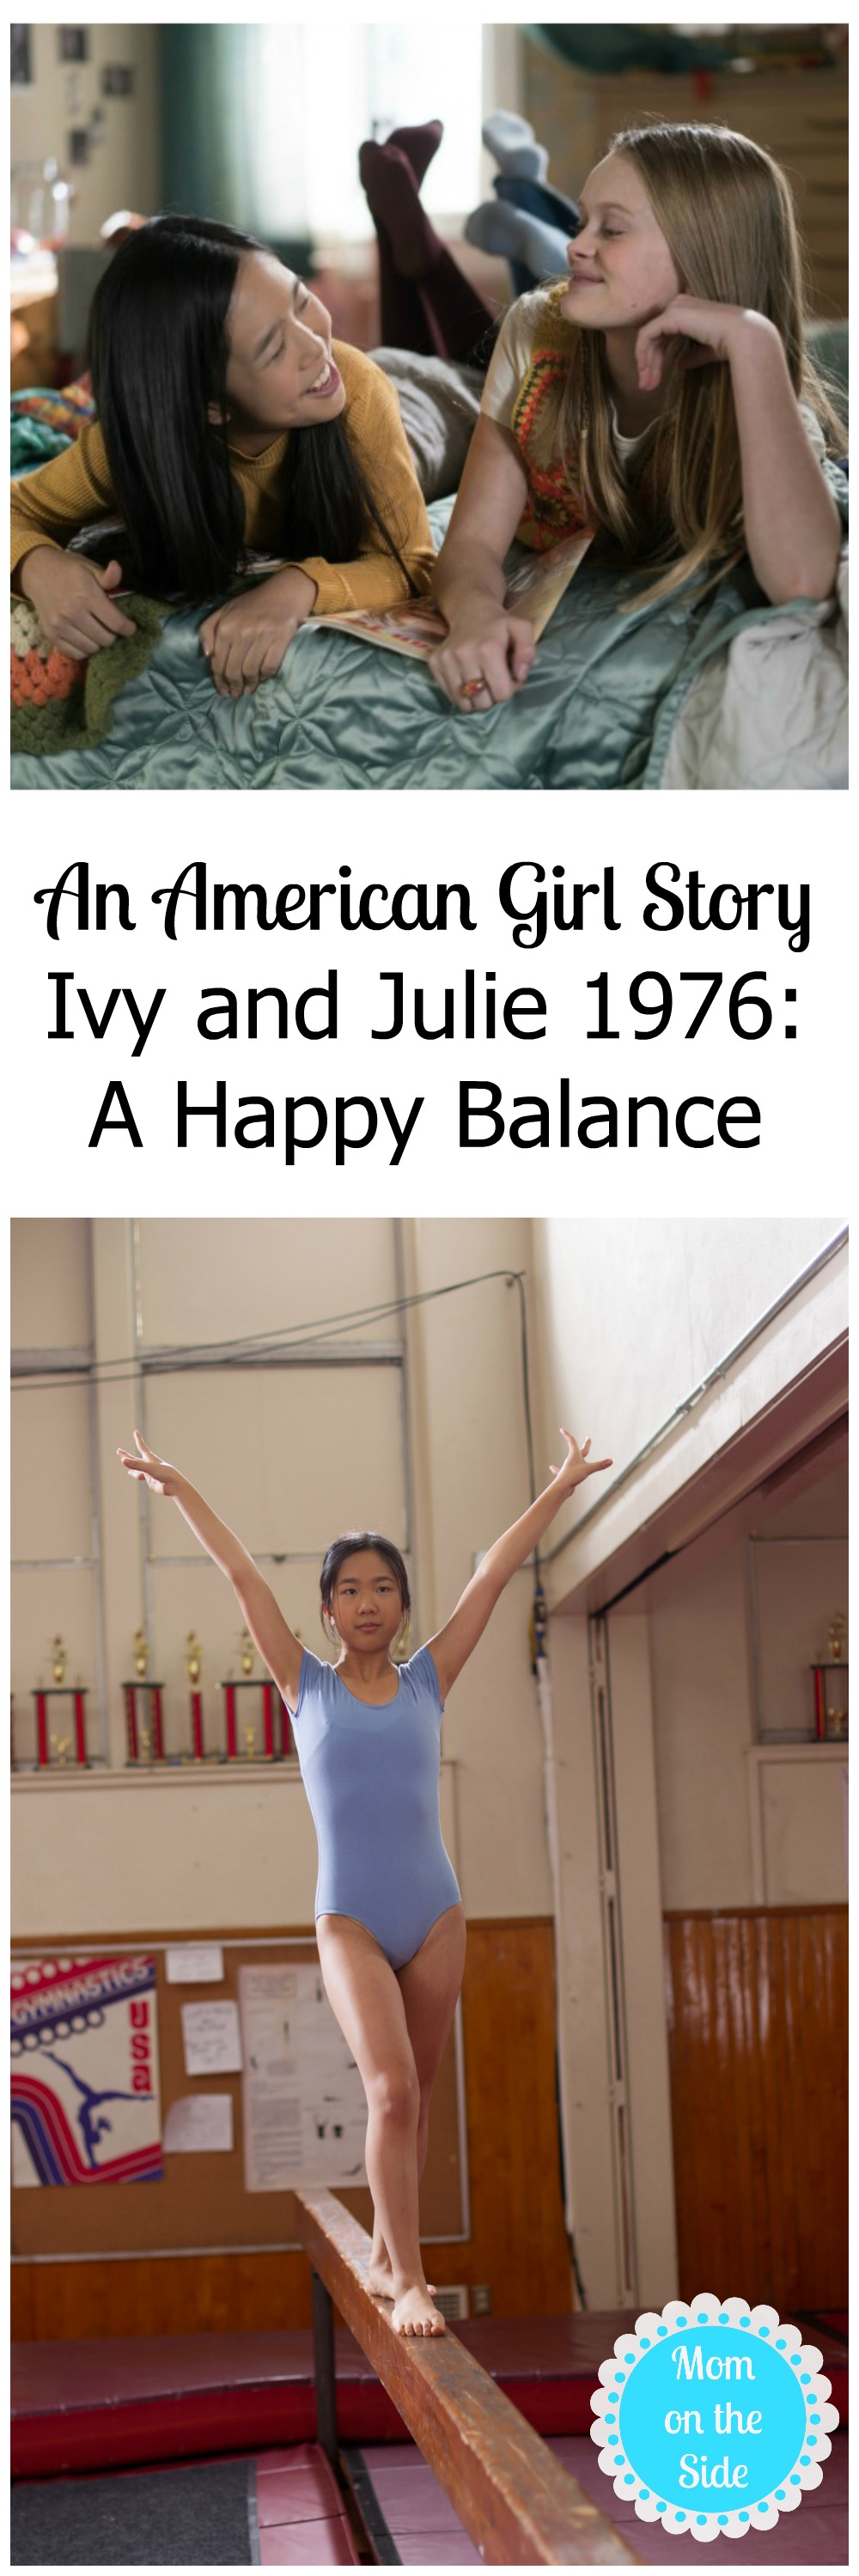 The new Amazon Original: An American Girl Story - Ivy and Julie 1976: A Happy Balance is coming to Amazon Prime on March 24th.